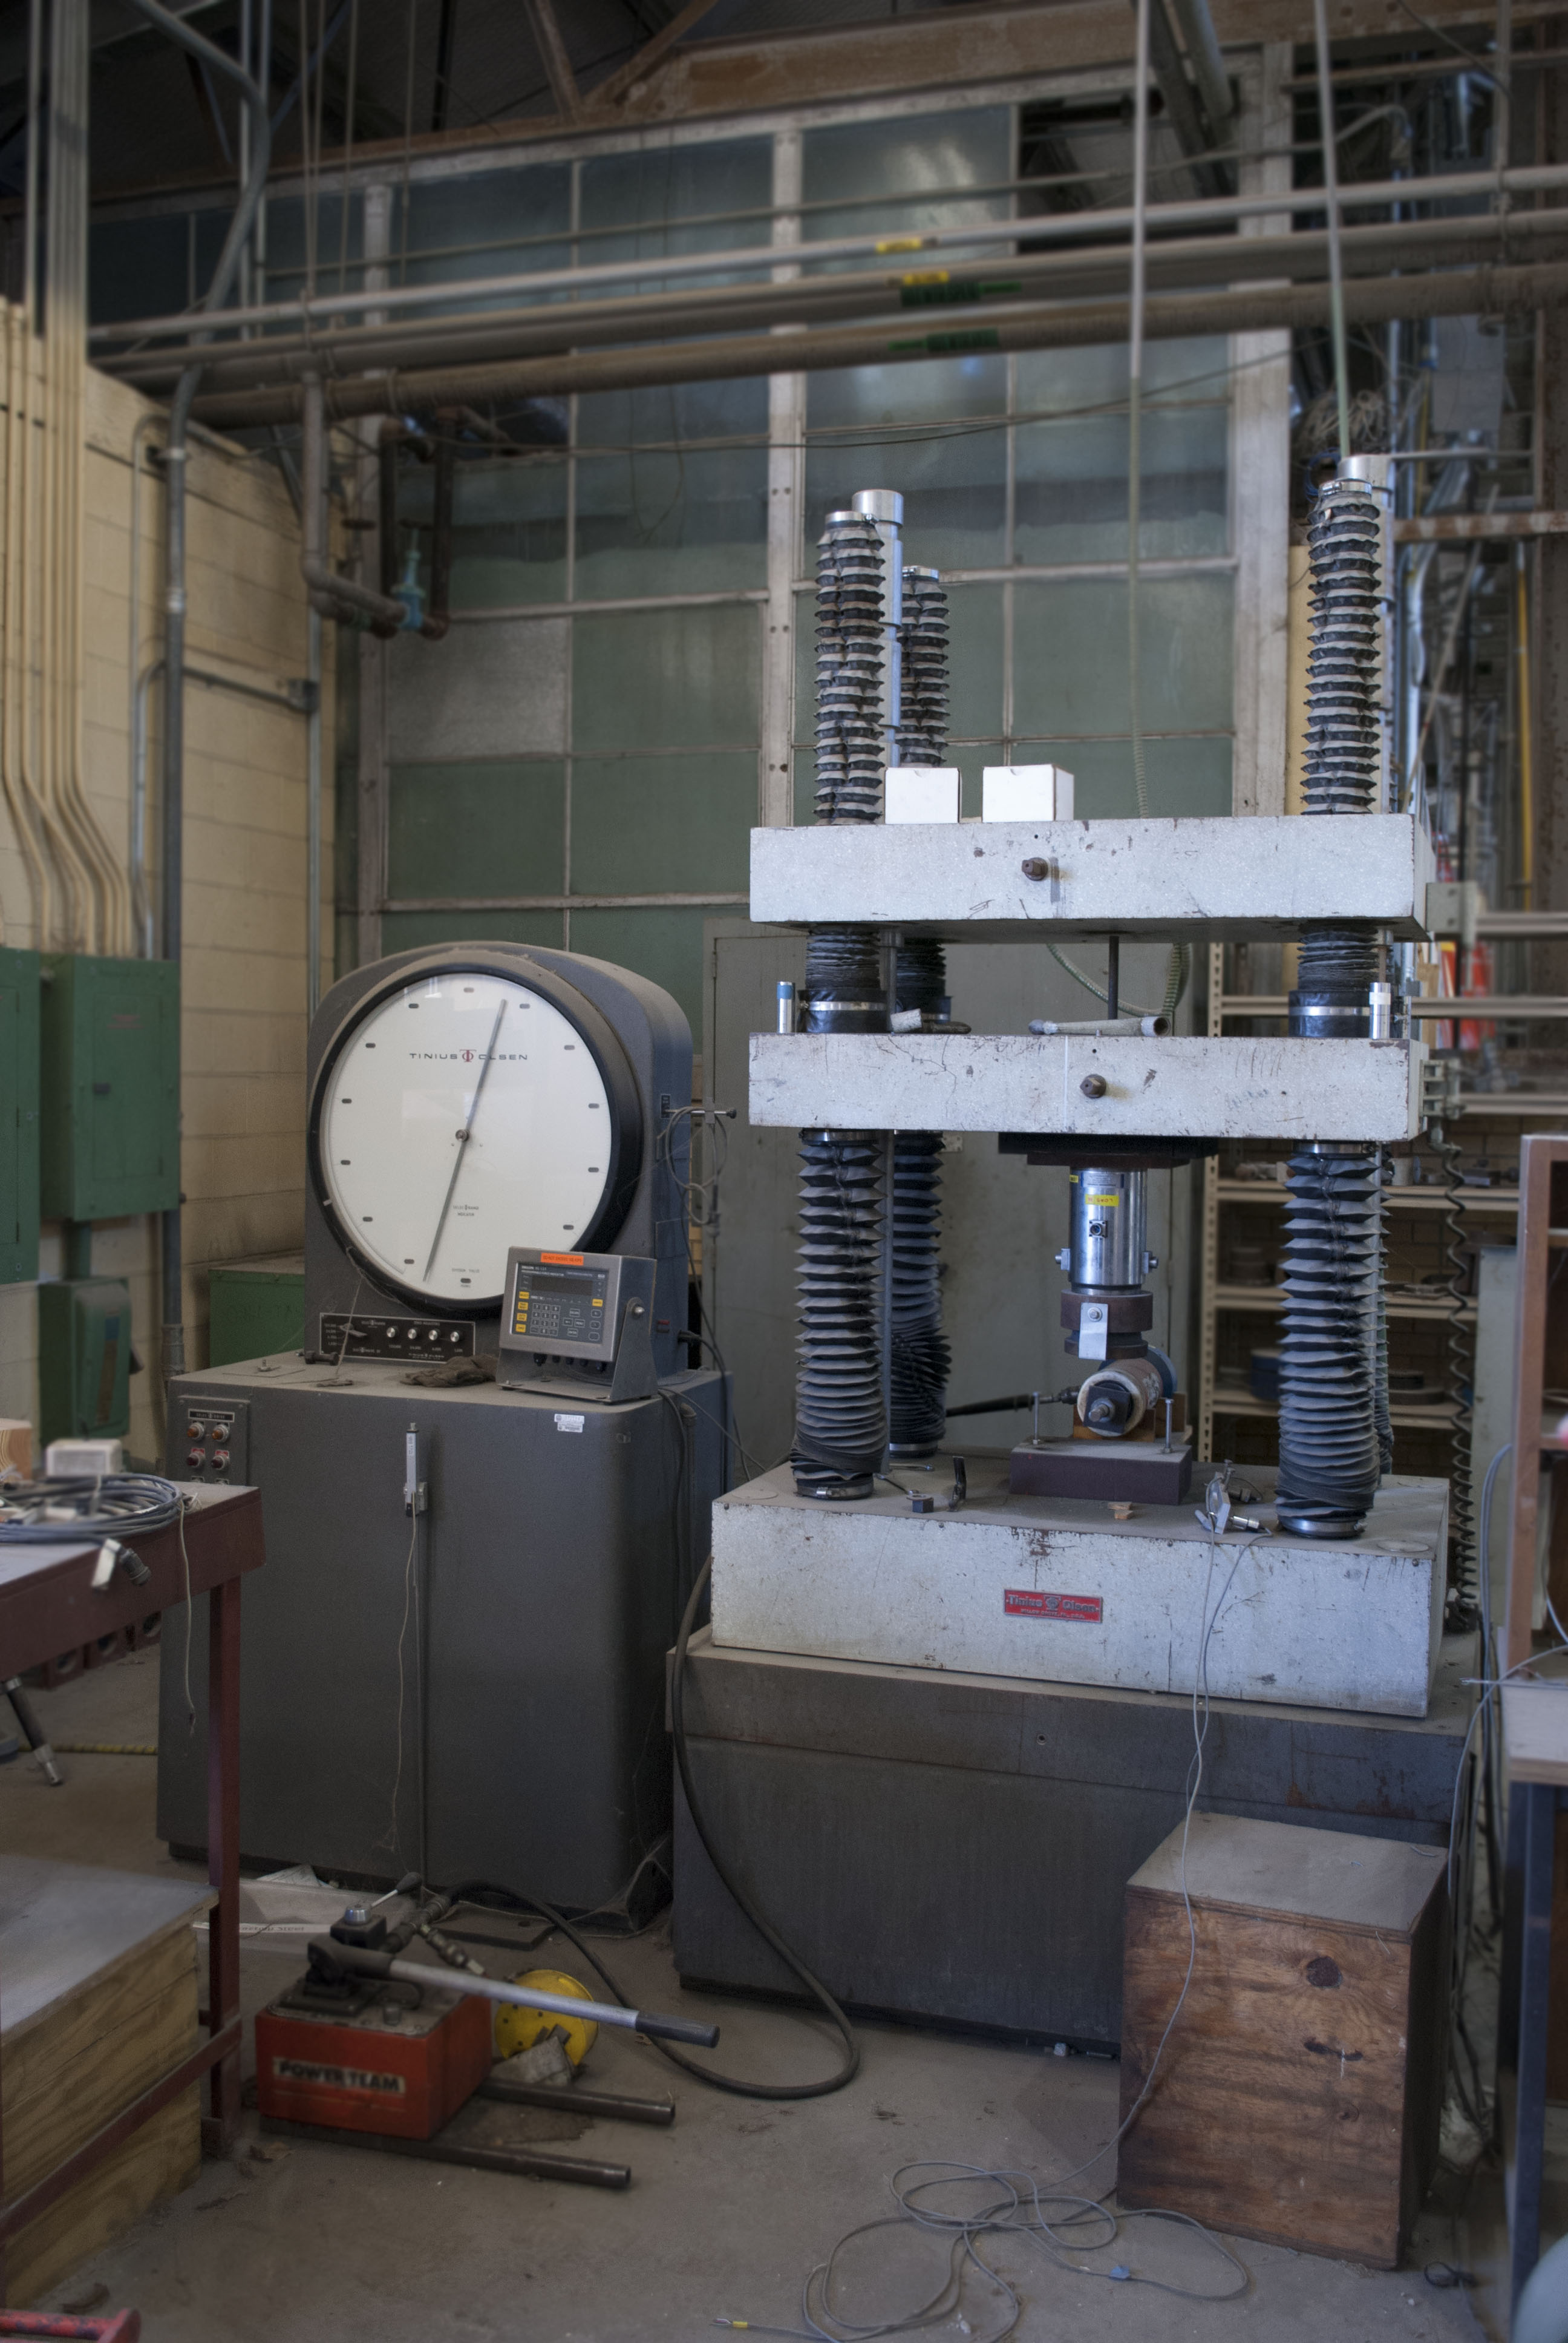 view of universal test machines